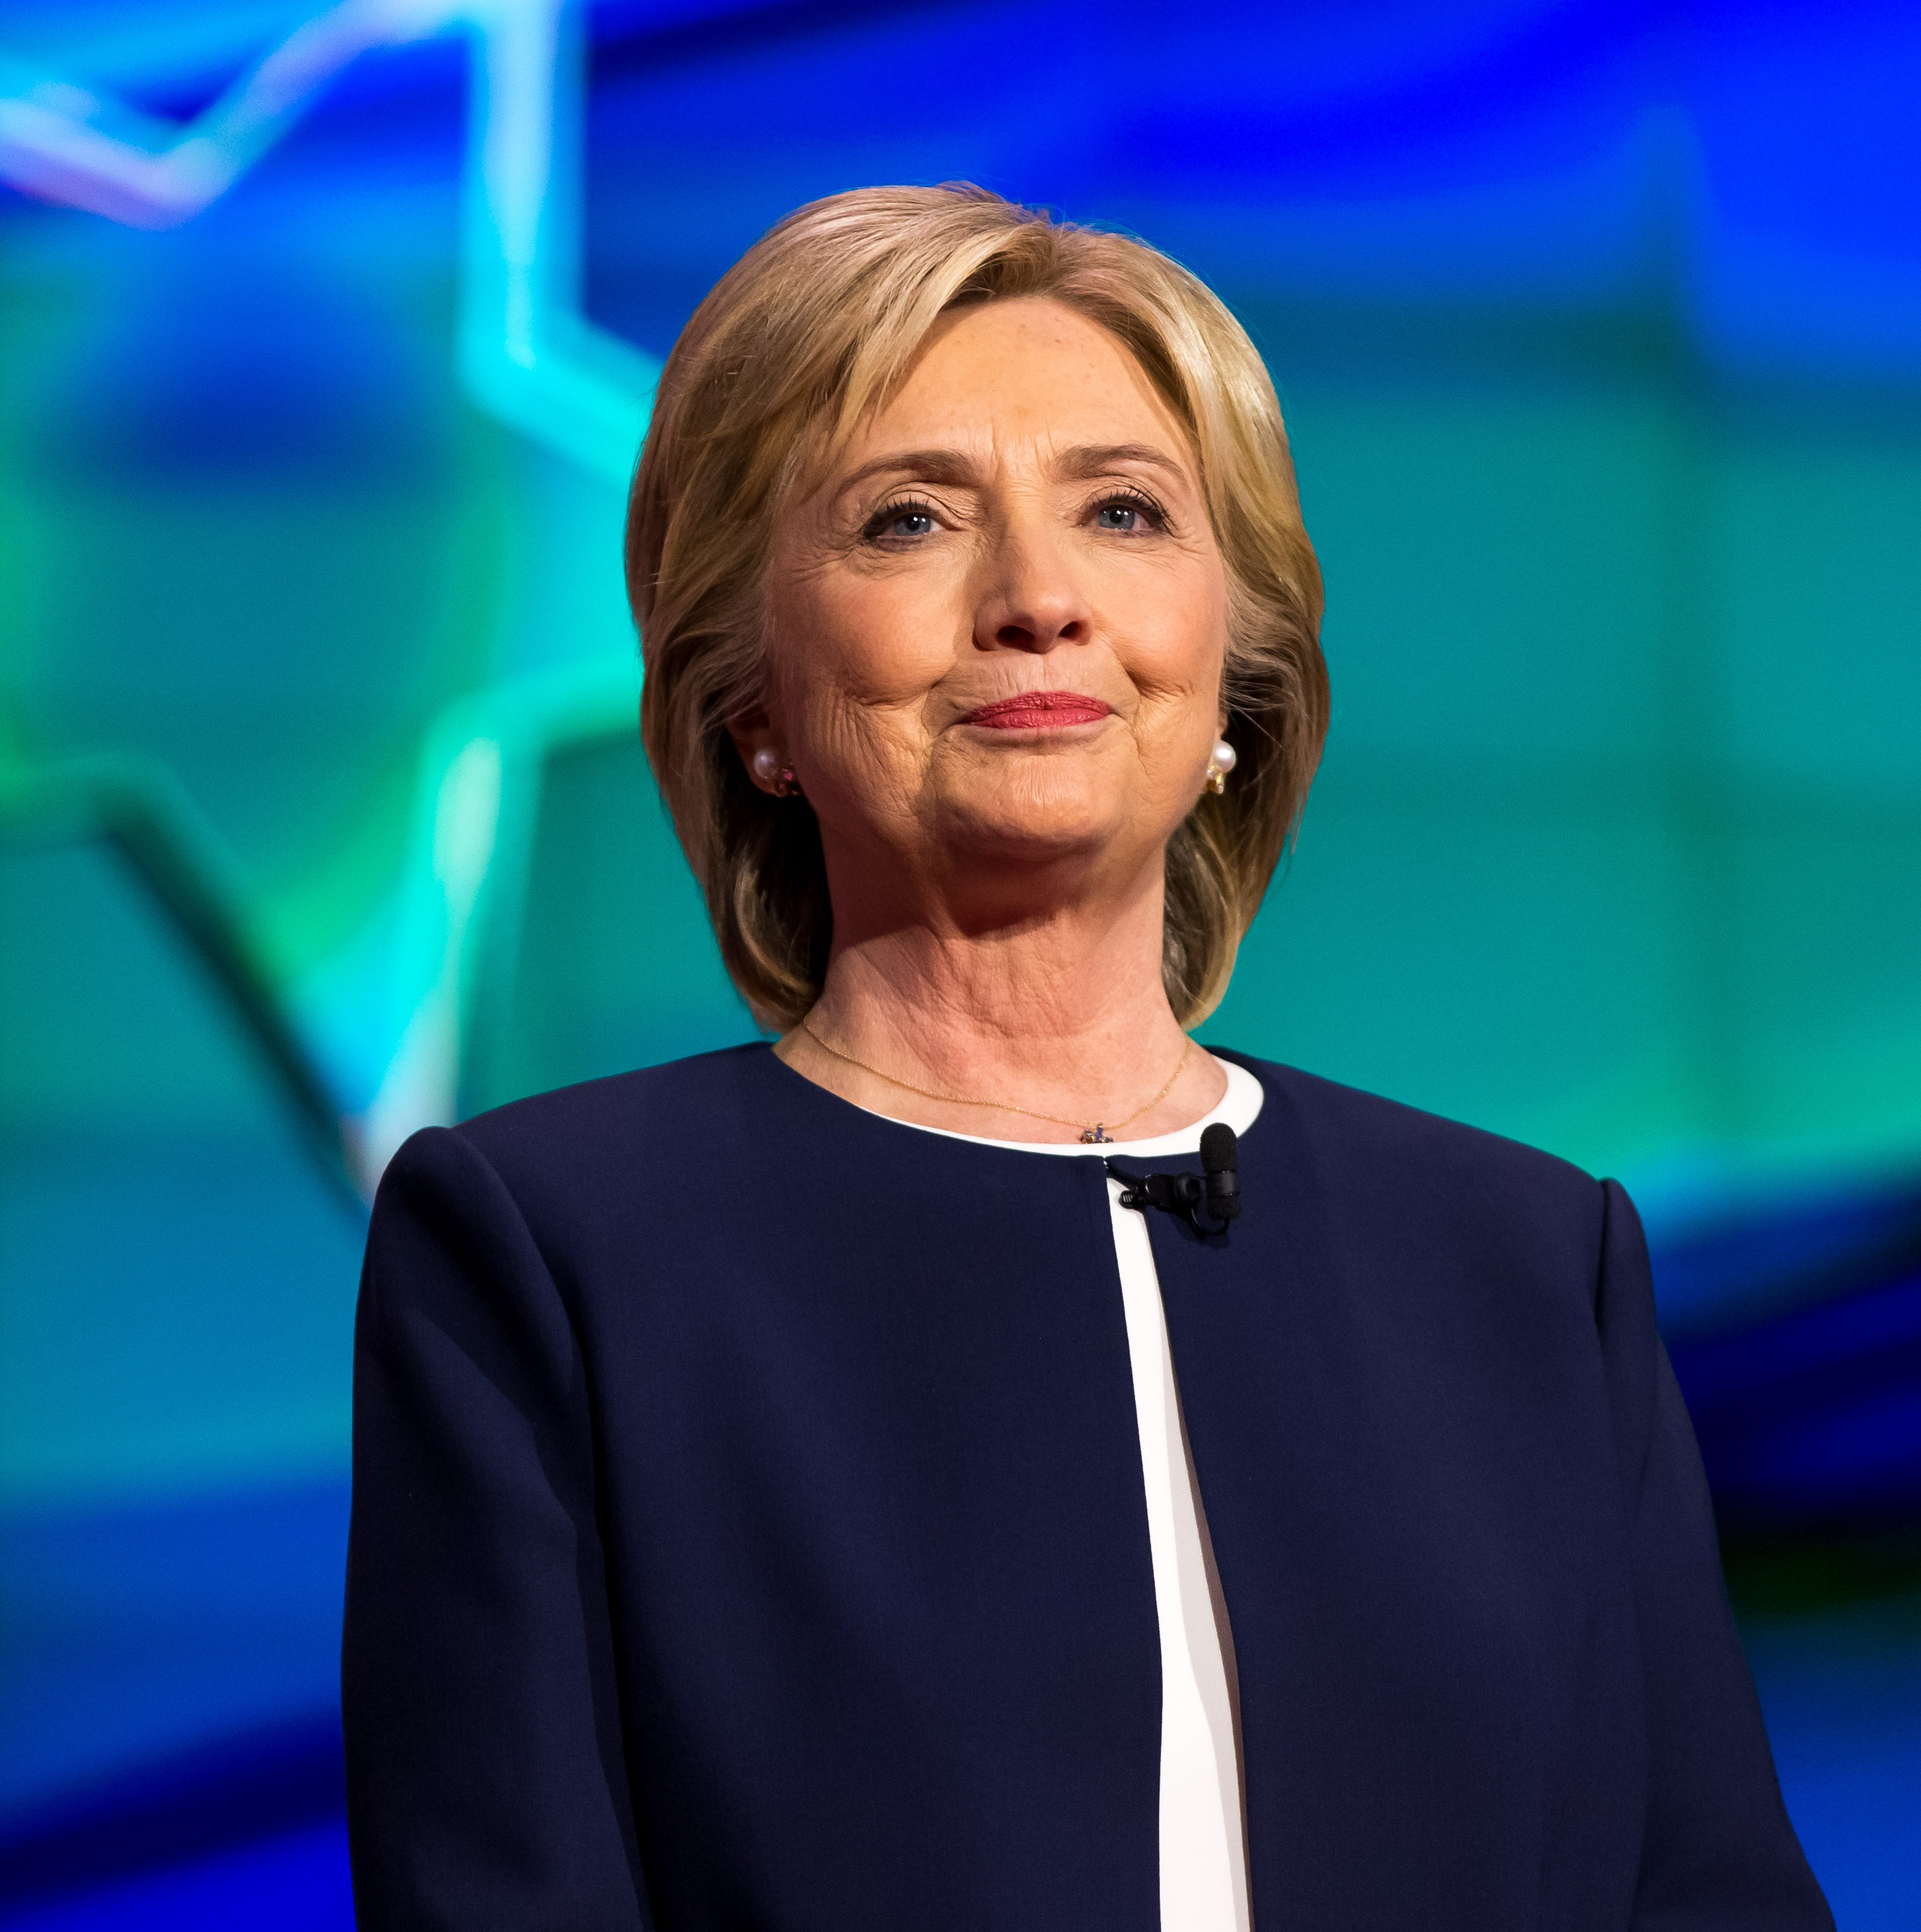 Hillary Clinton pictured at the 2015 CNN Democratic Presidential Debate at Wynn Resort in Las Vegas, NV on Oct. 13, 2015.